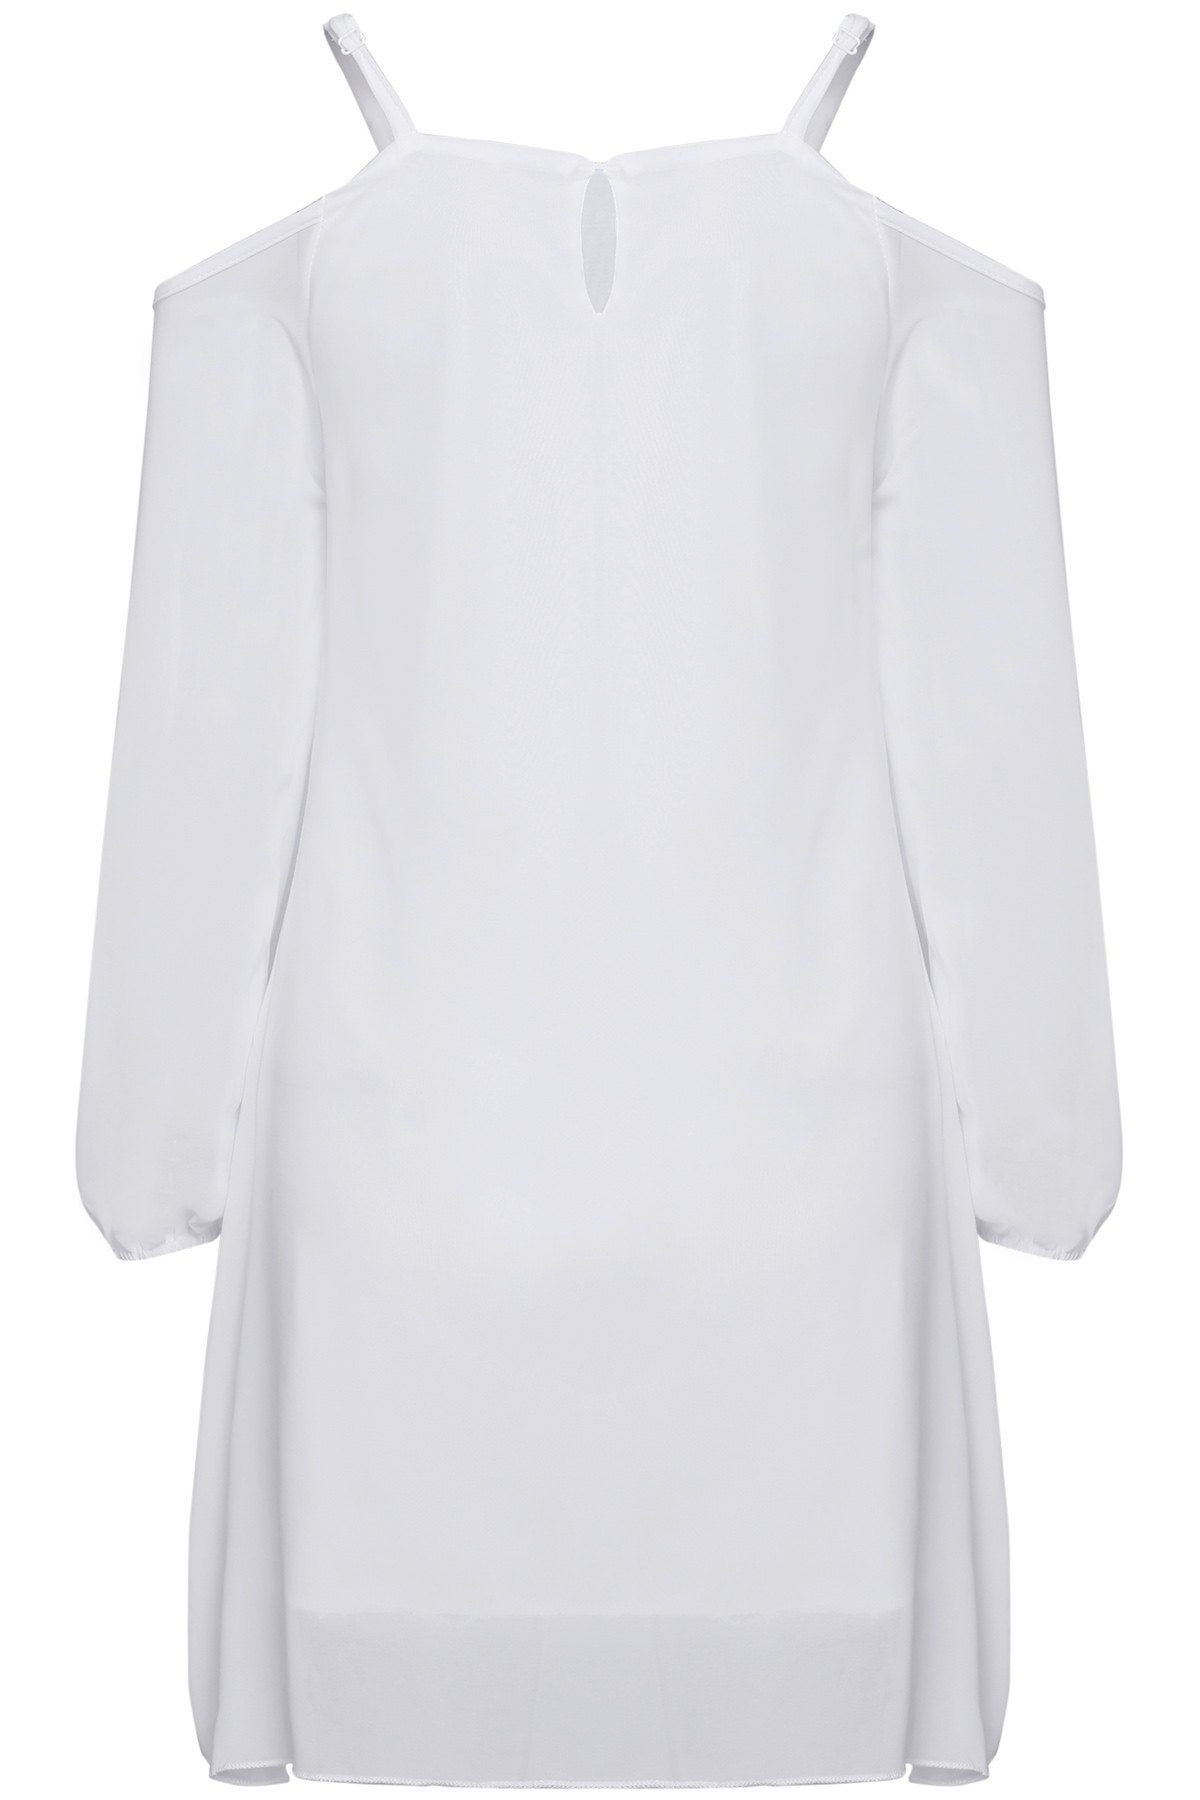 Long Sleeve Irregular Hem White Dress - WHITE S